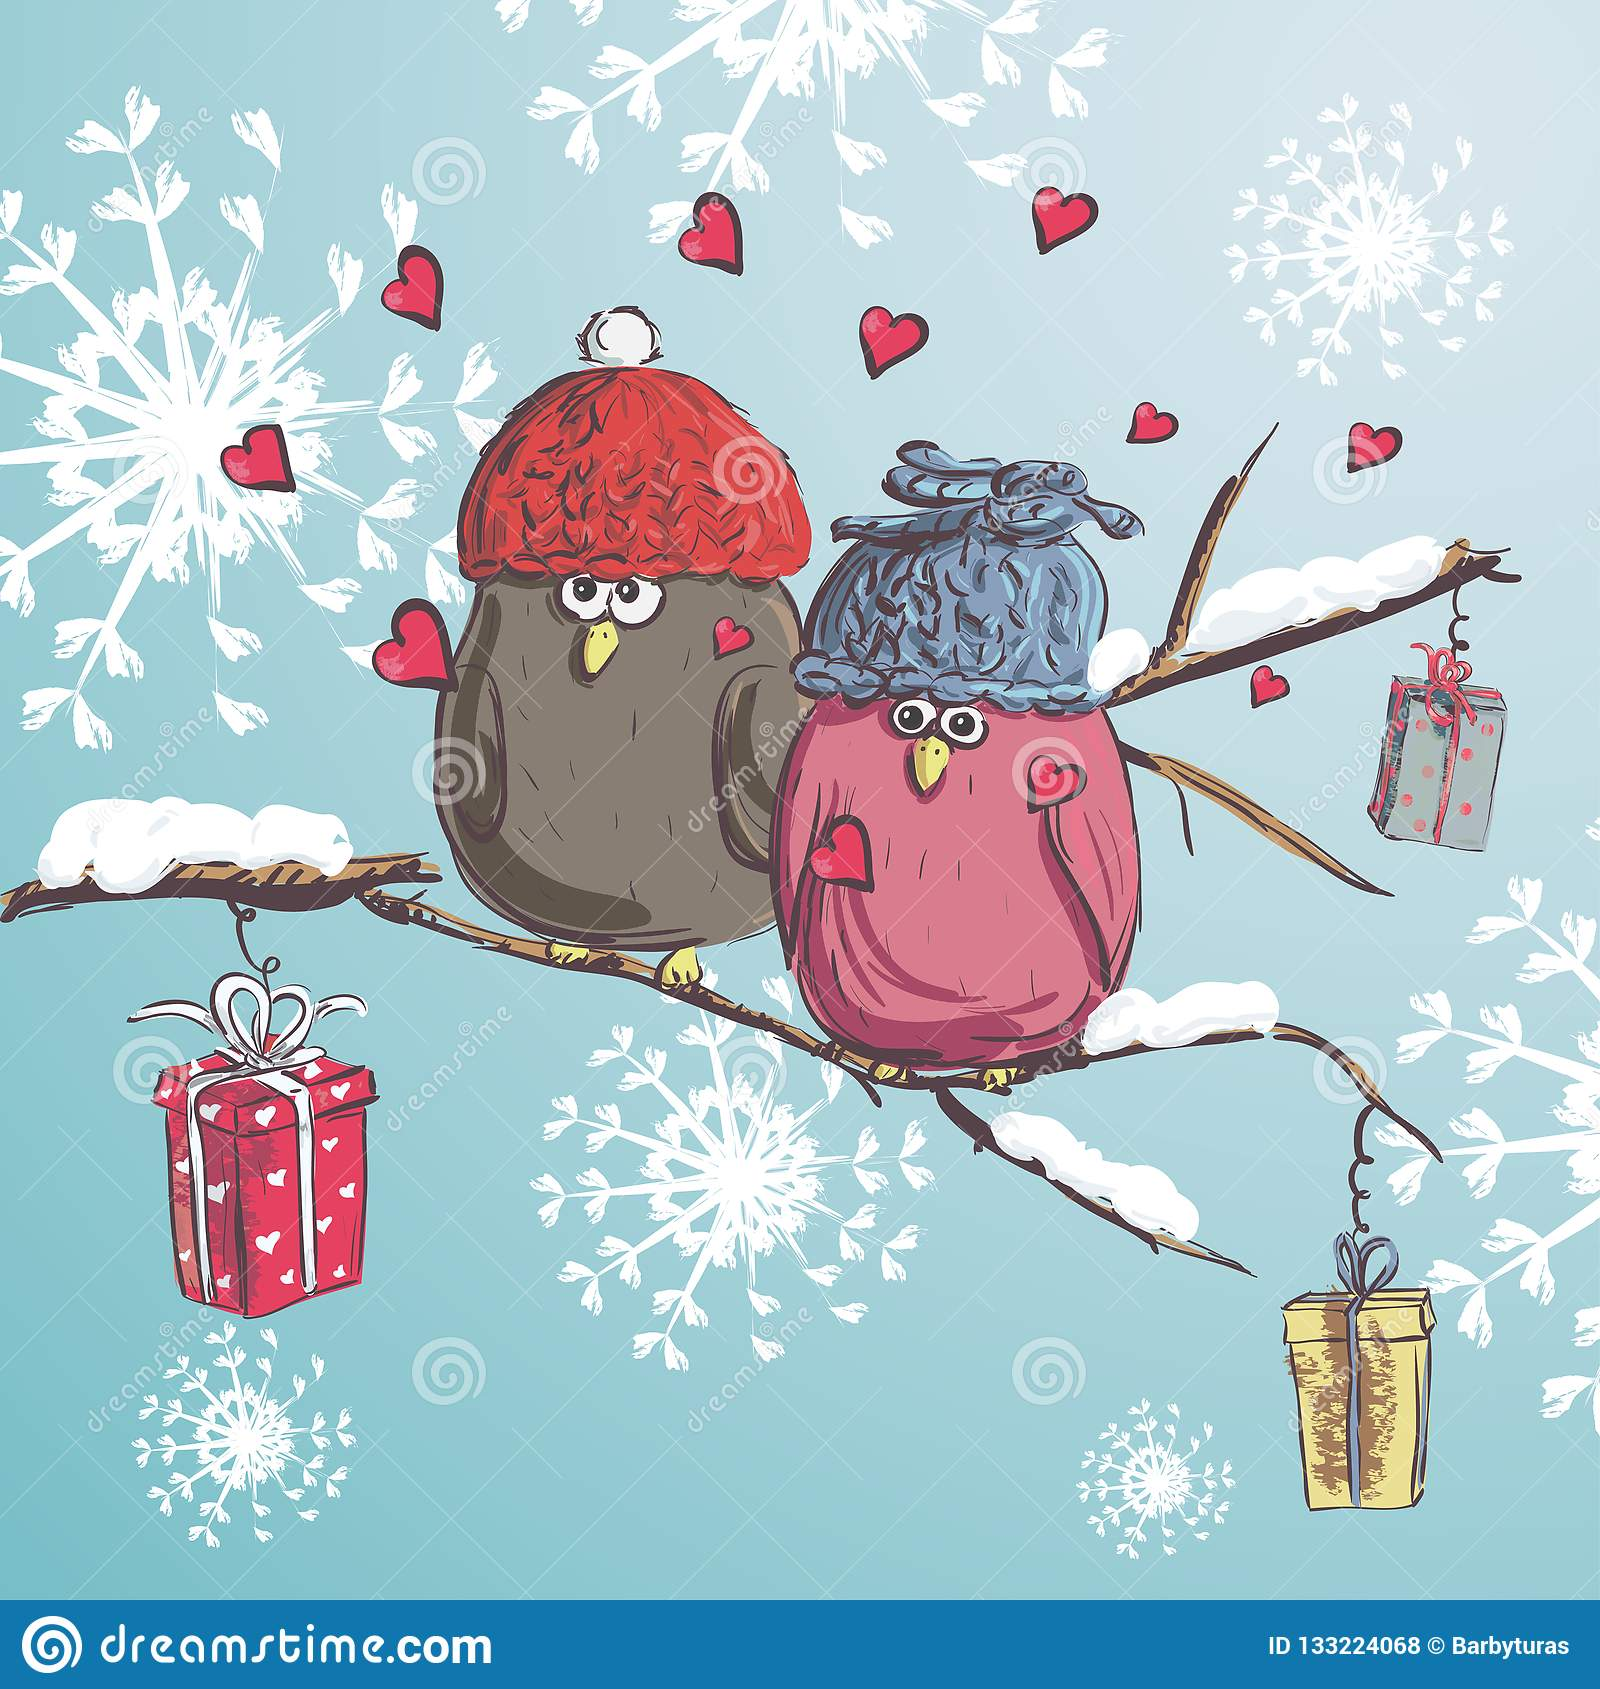 Two Birds Sitting On The Branch With Snow. Winter Cartoon